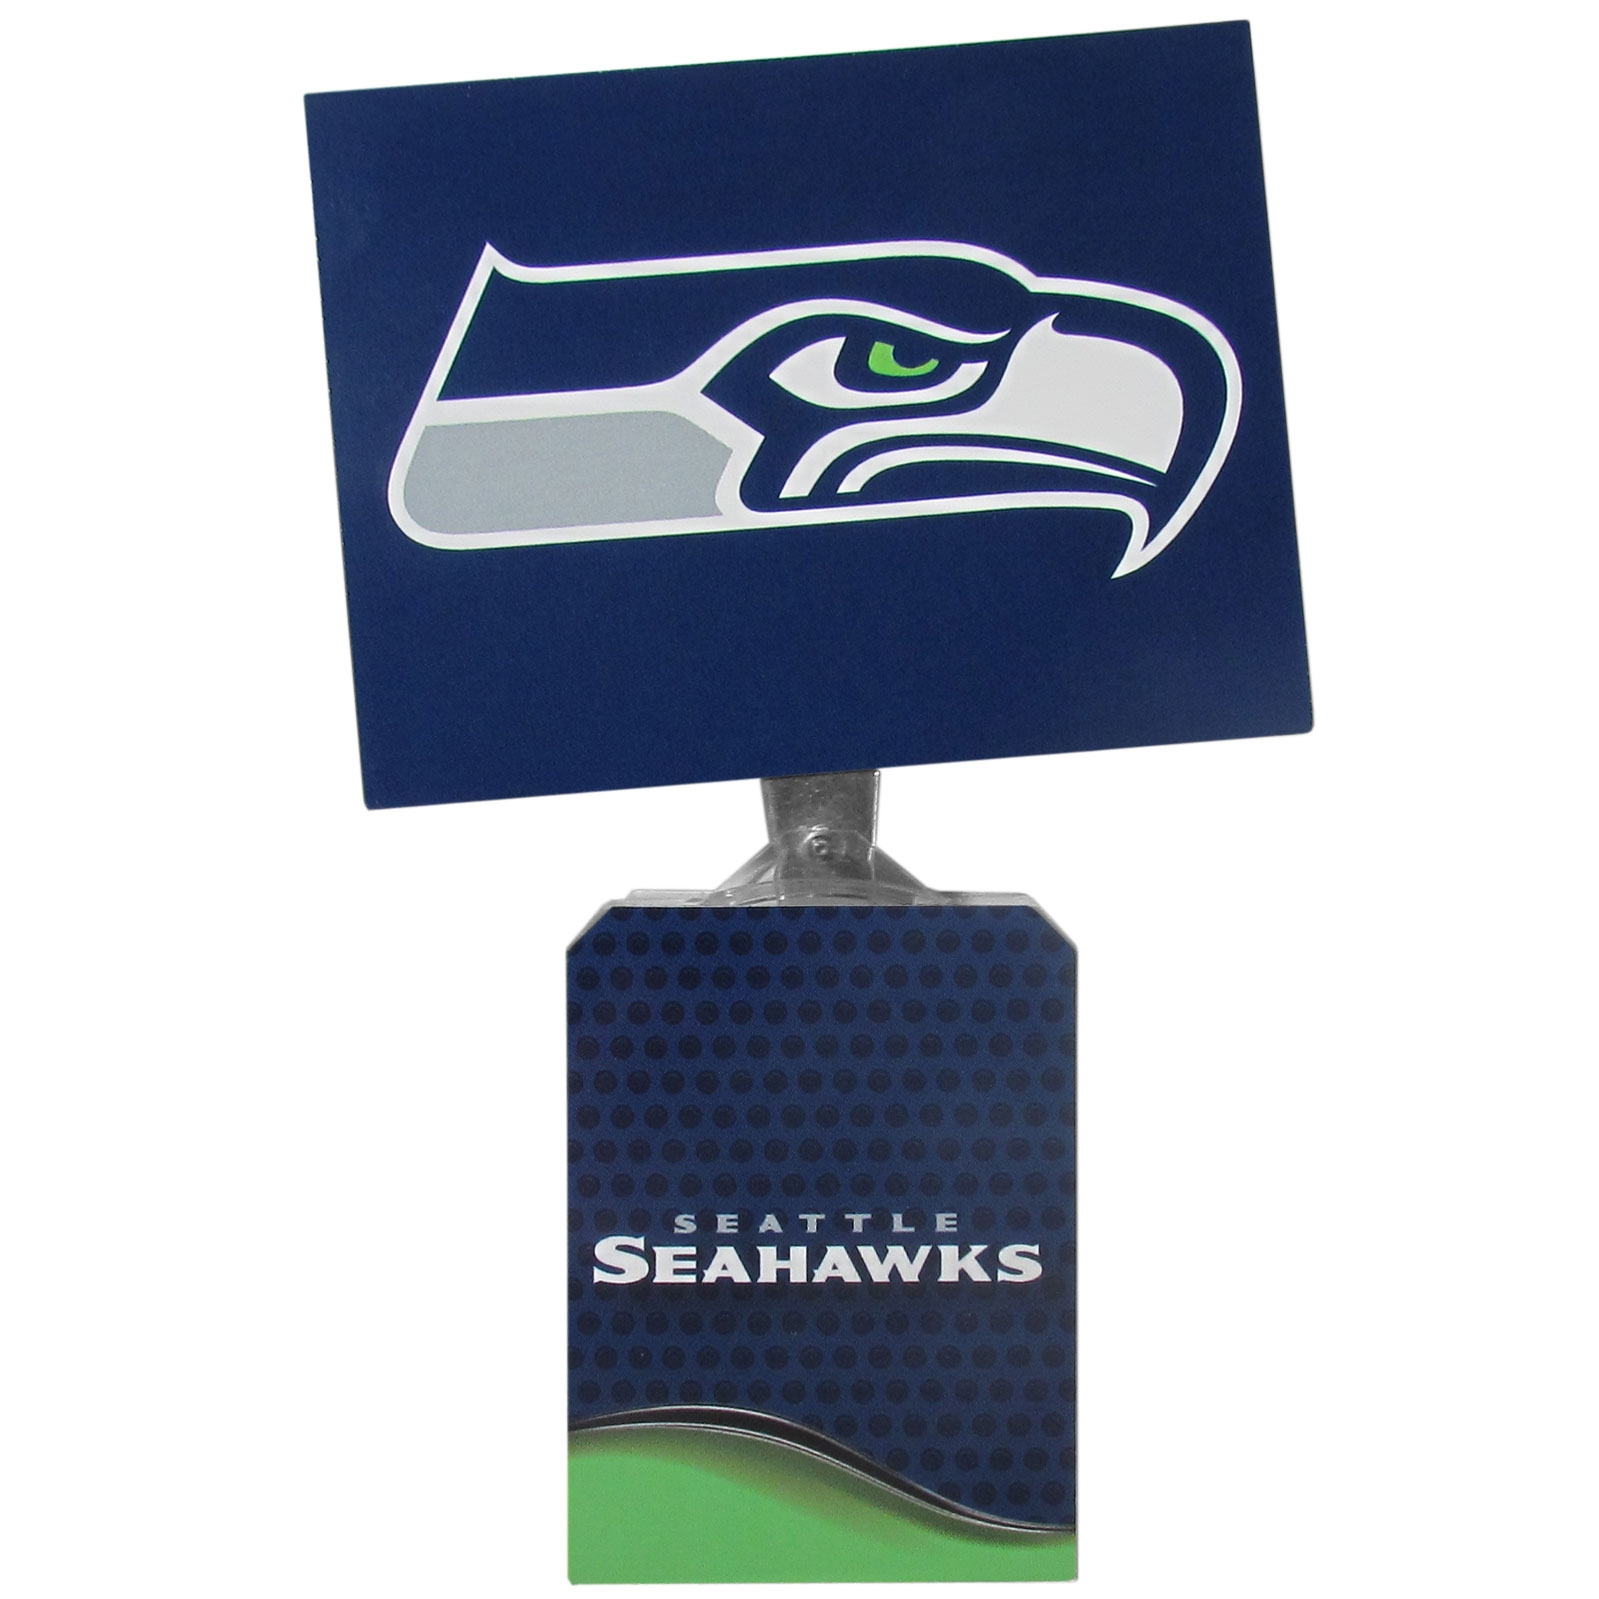 Seattle Seahawks Solar Flags - Get pumped up on the way to game with Siskiyou's Chicago Bears Seattle Seahawks Solar Flag that mounts to your dashboard or window. The in-motion solar flag also doubles as decoration for your tailgate or homegate! The base of the flag is 3 inches tall and the flag is 4 inches making the entire in-motion solar flag stand at 7 inches tall. Keep your spirit moving with your favorite team's Solar Flag.